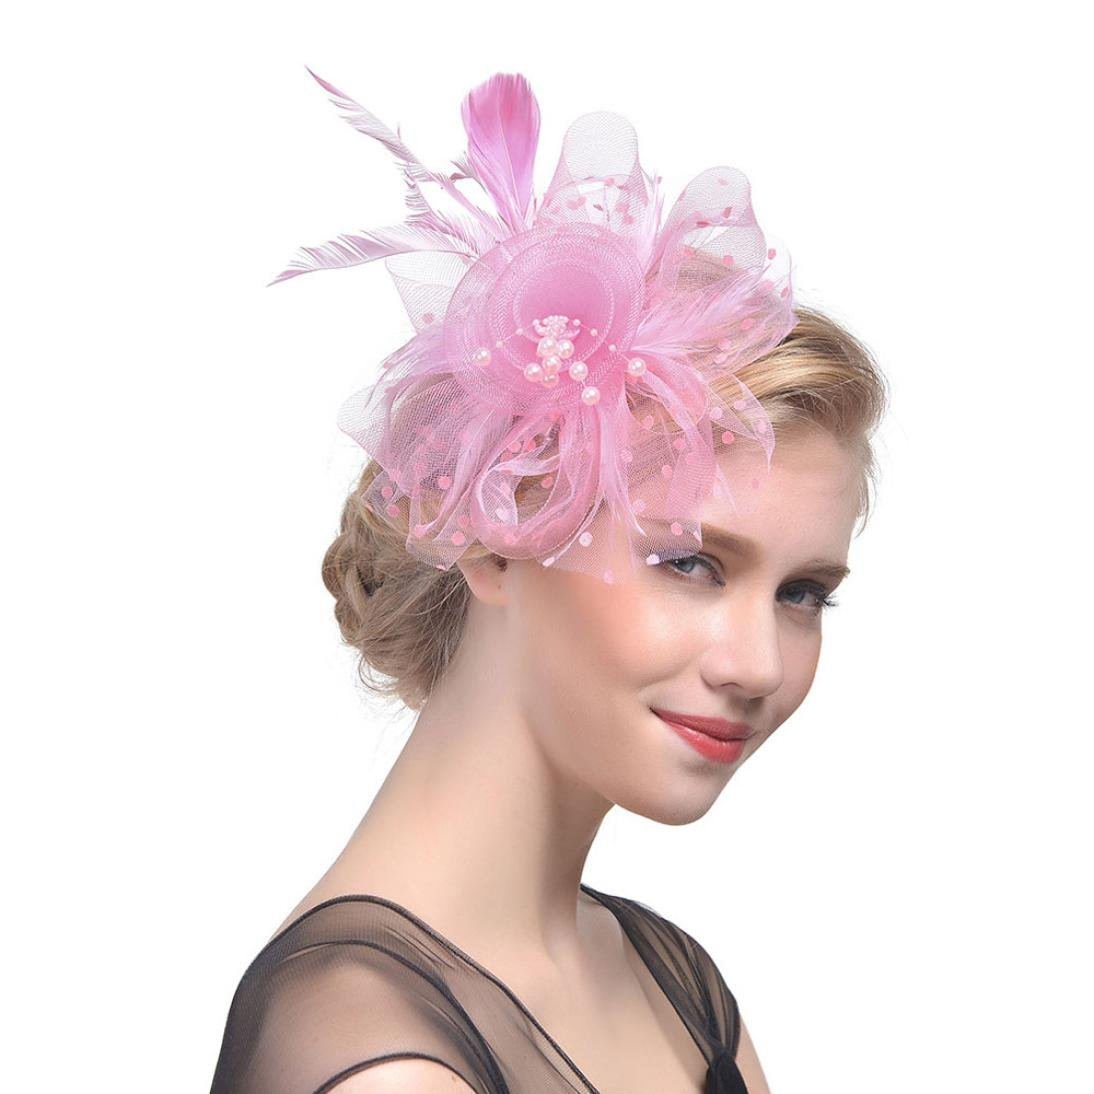 29fdc417a4bc4 Fascinators Hat Flower Mesh Ribbons Feathers Headband Forked Clip Wedding  Cocktail Tea Party Hat Headwear for Womens Girls (Beige II) at Amazon  Women s ...